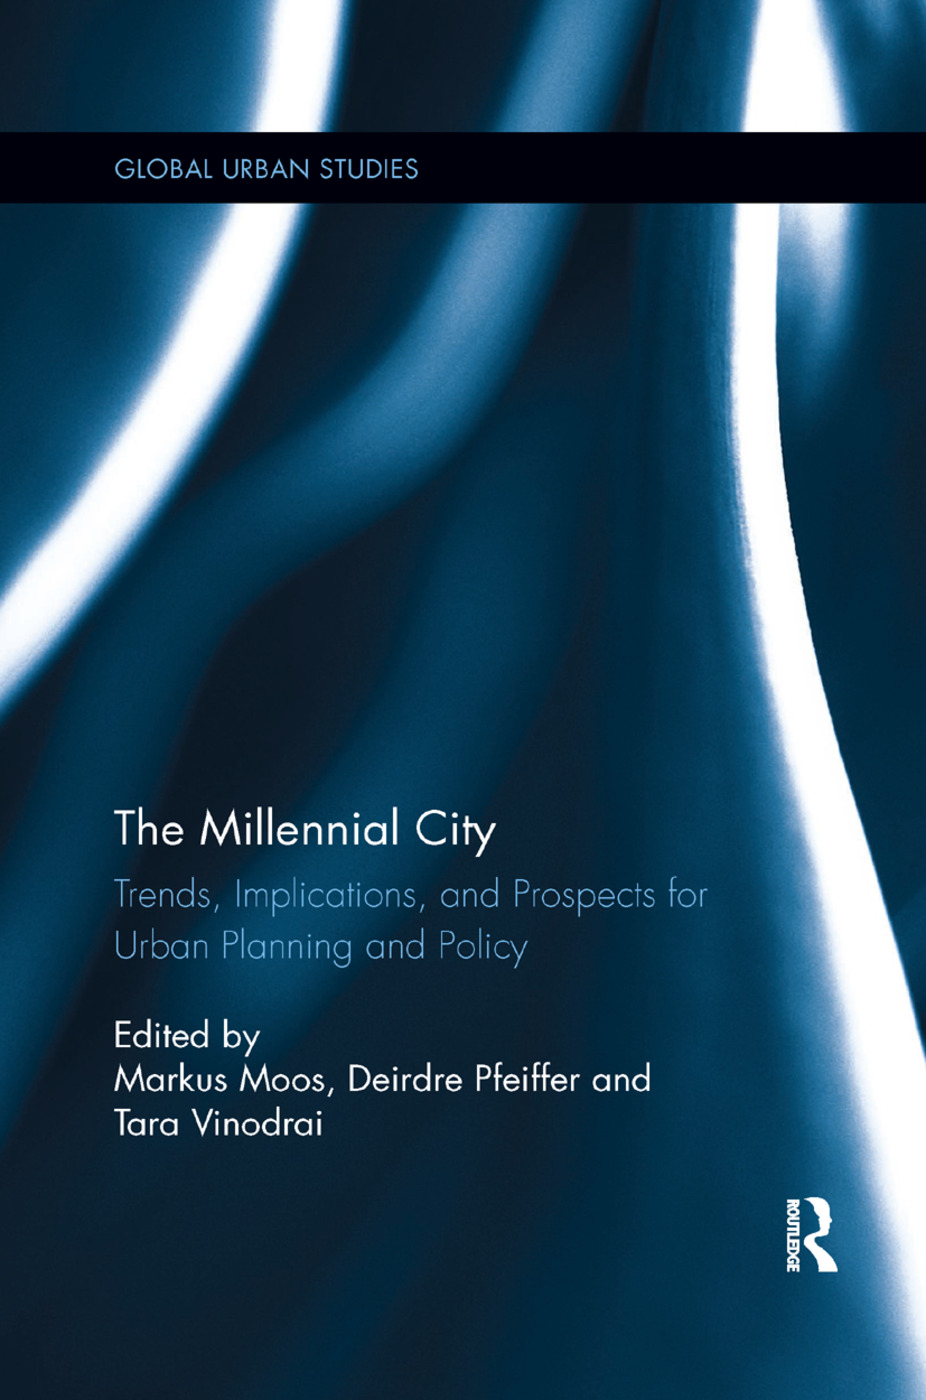 The Millennial City: Trends, Implications, and Prospects for Urban Planning and Policy book cover